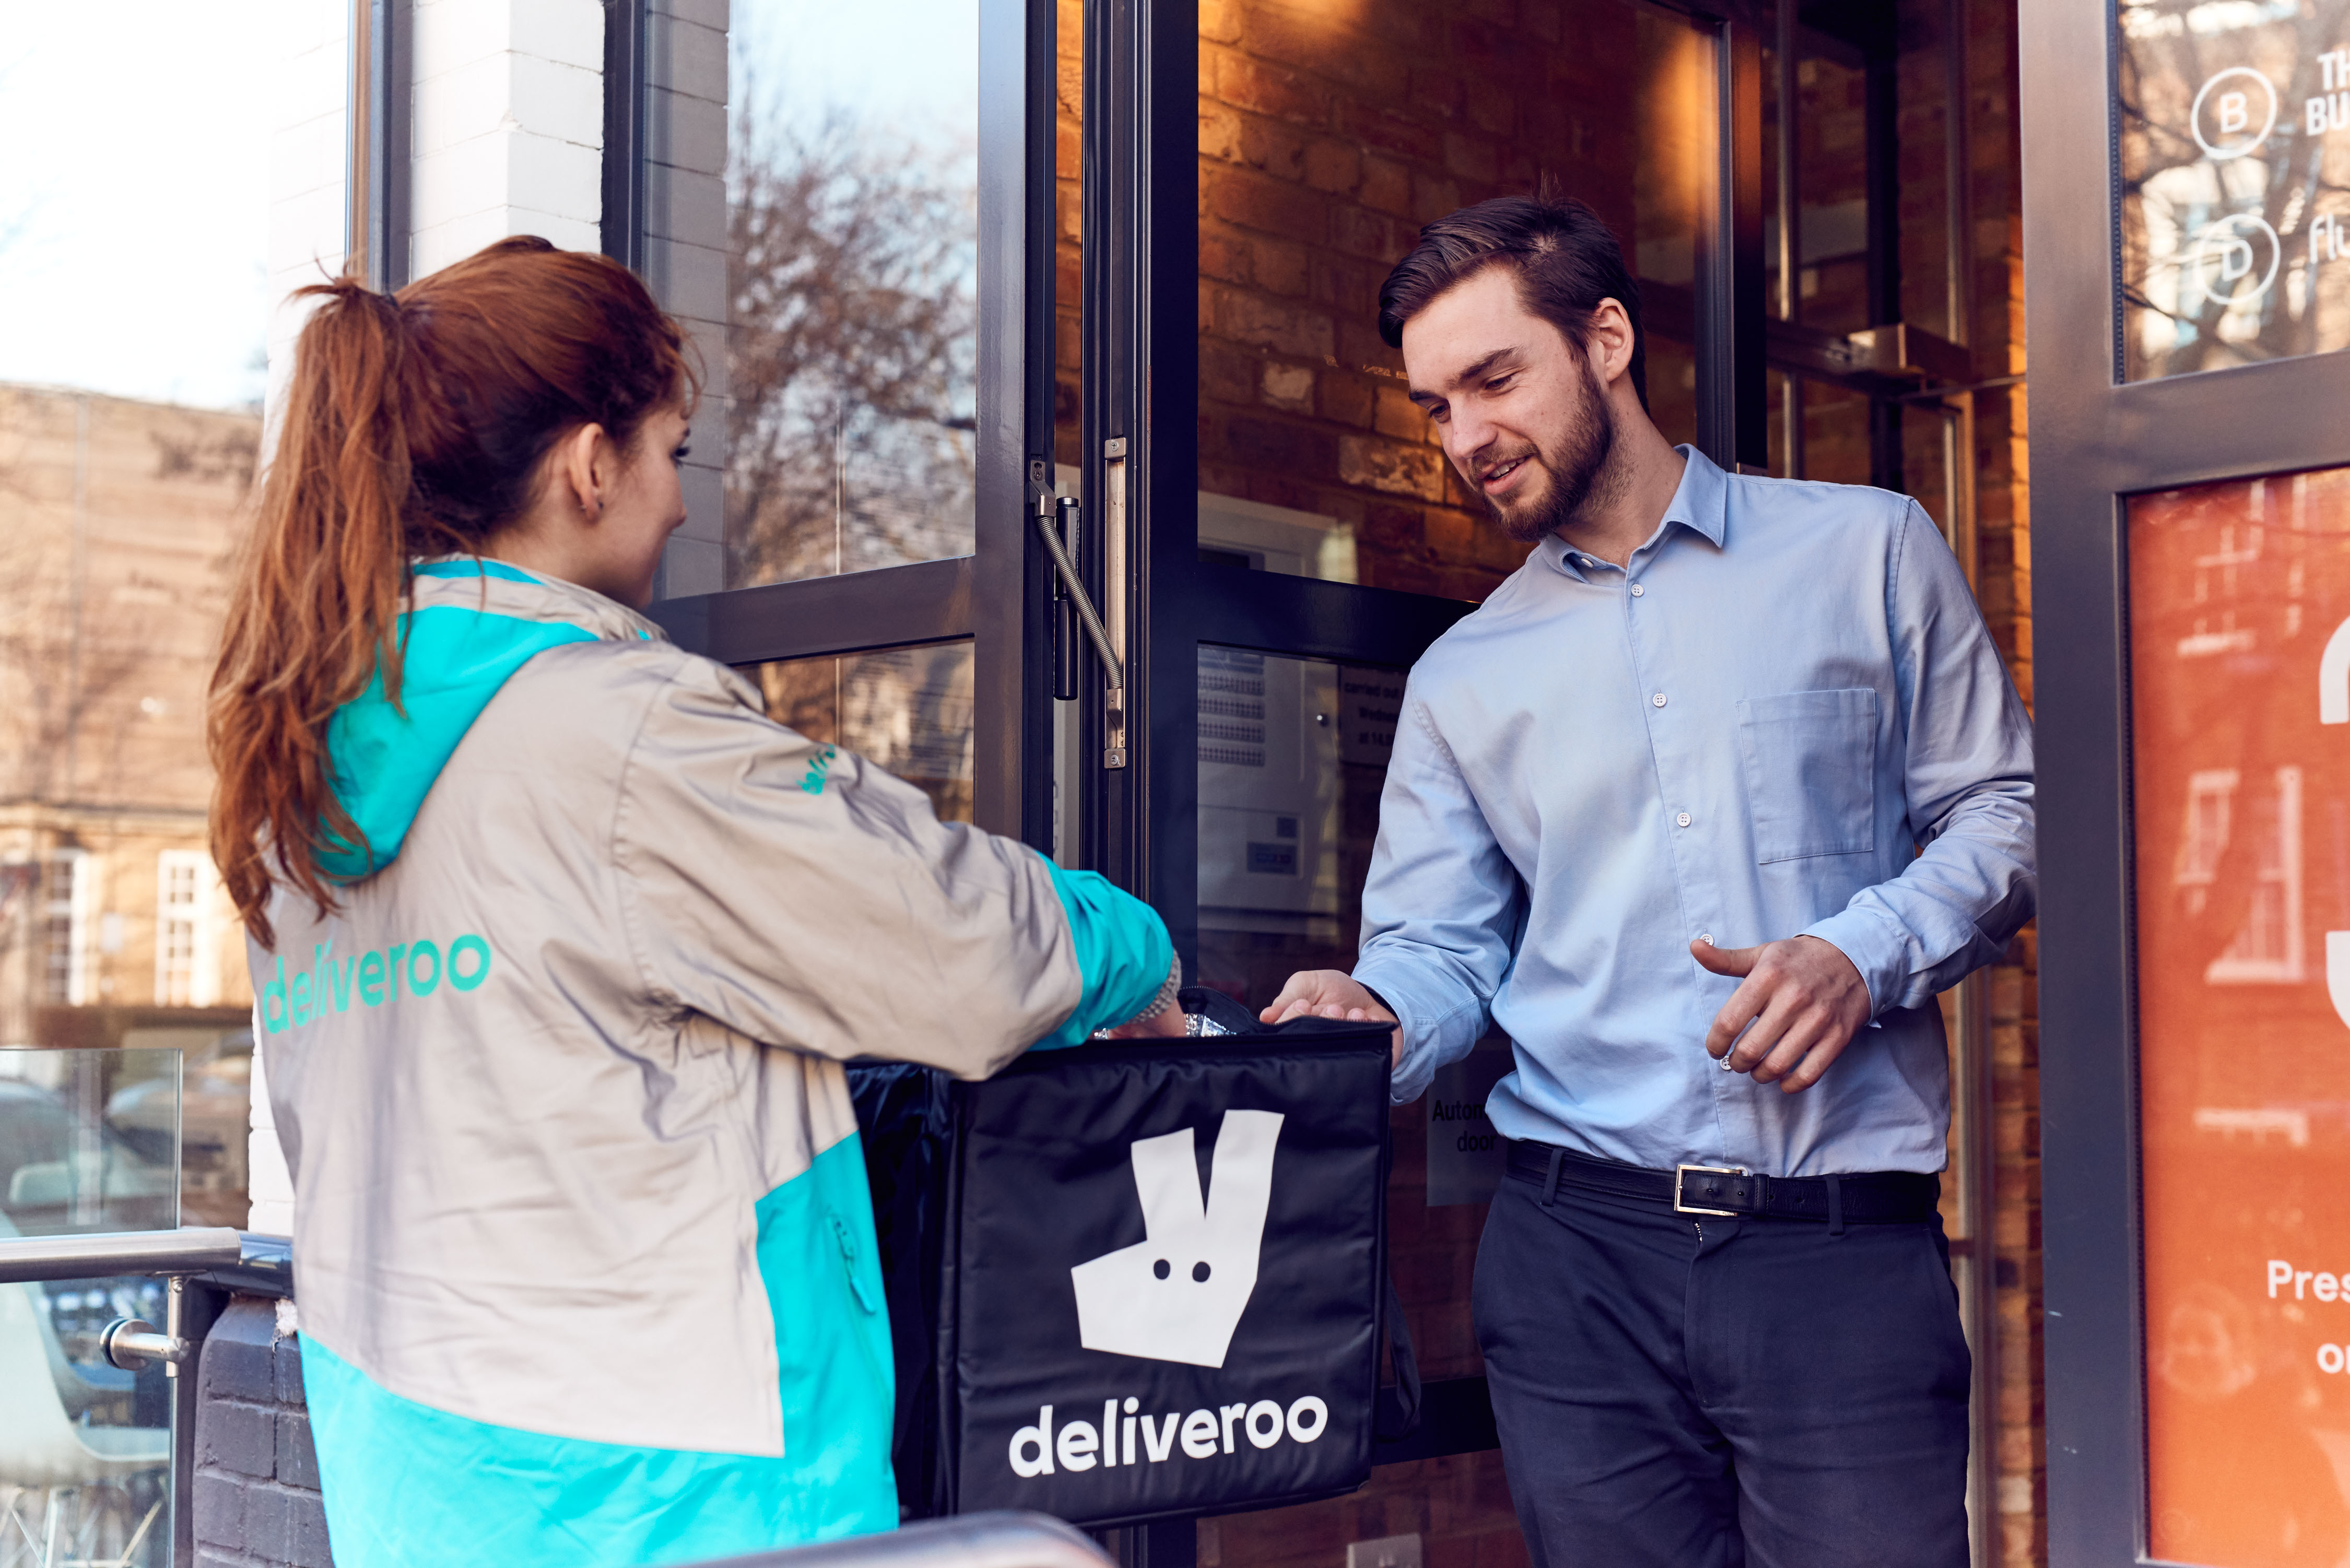 A Deliveroo driver delivers food to a customer, as the restaurant delivery company struggles with hacking